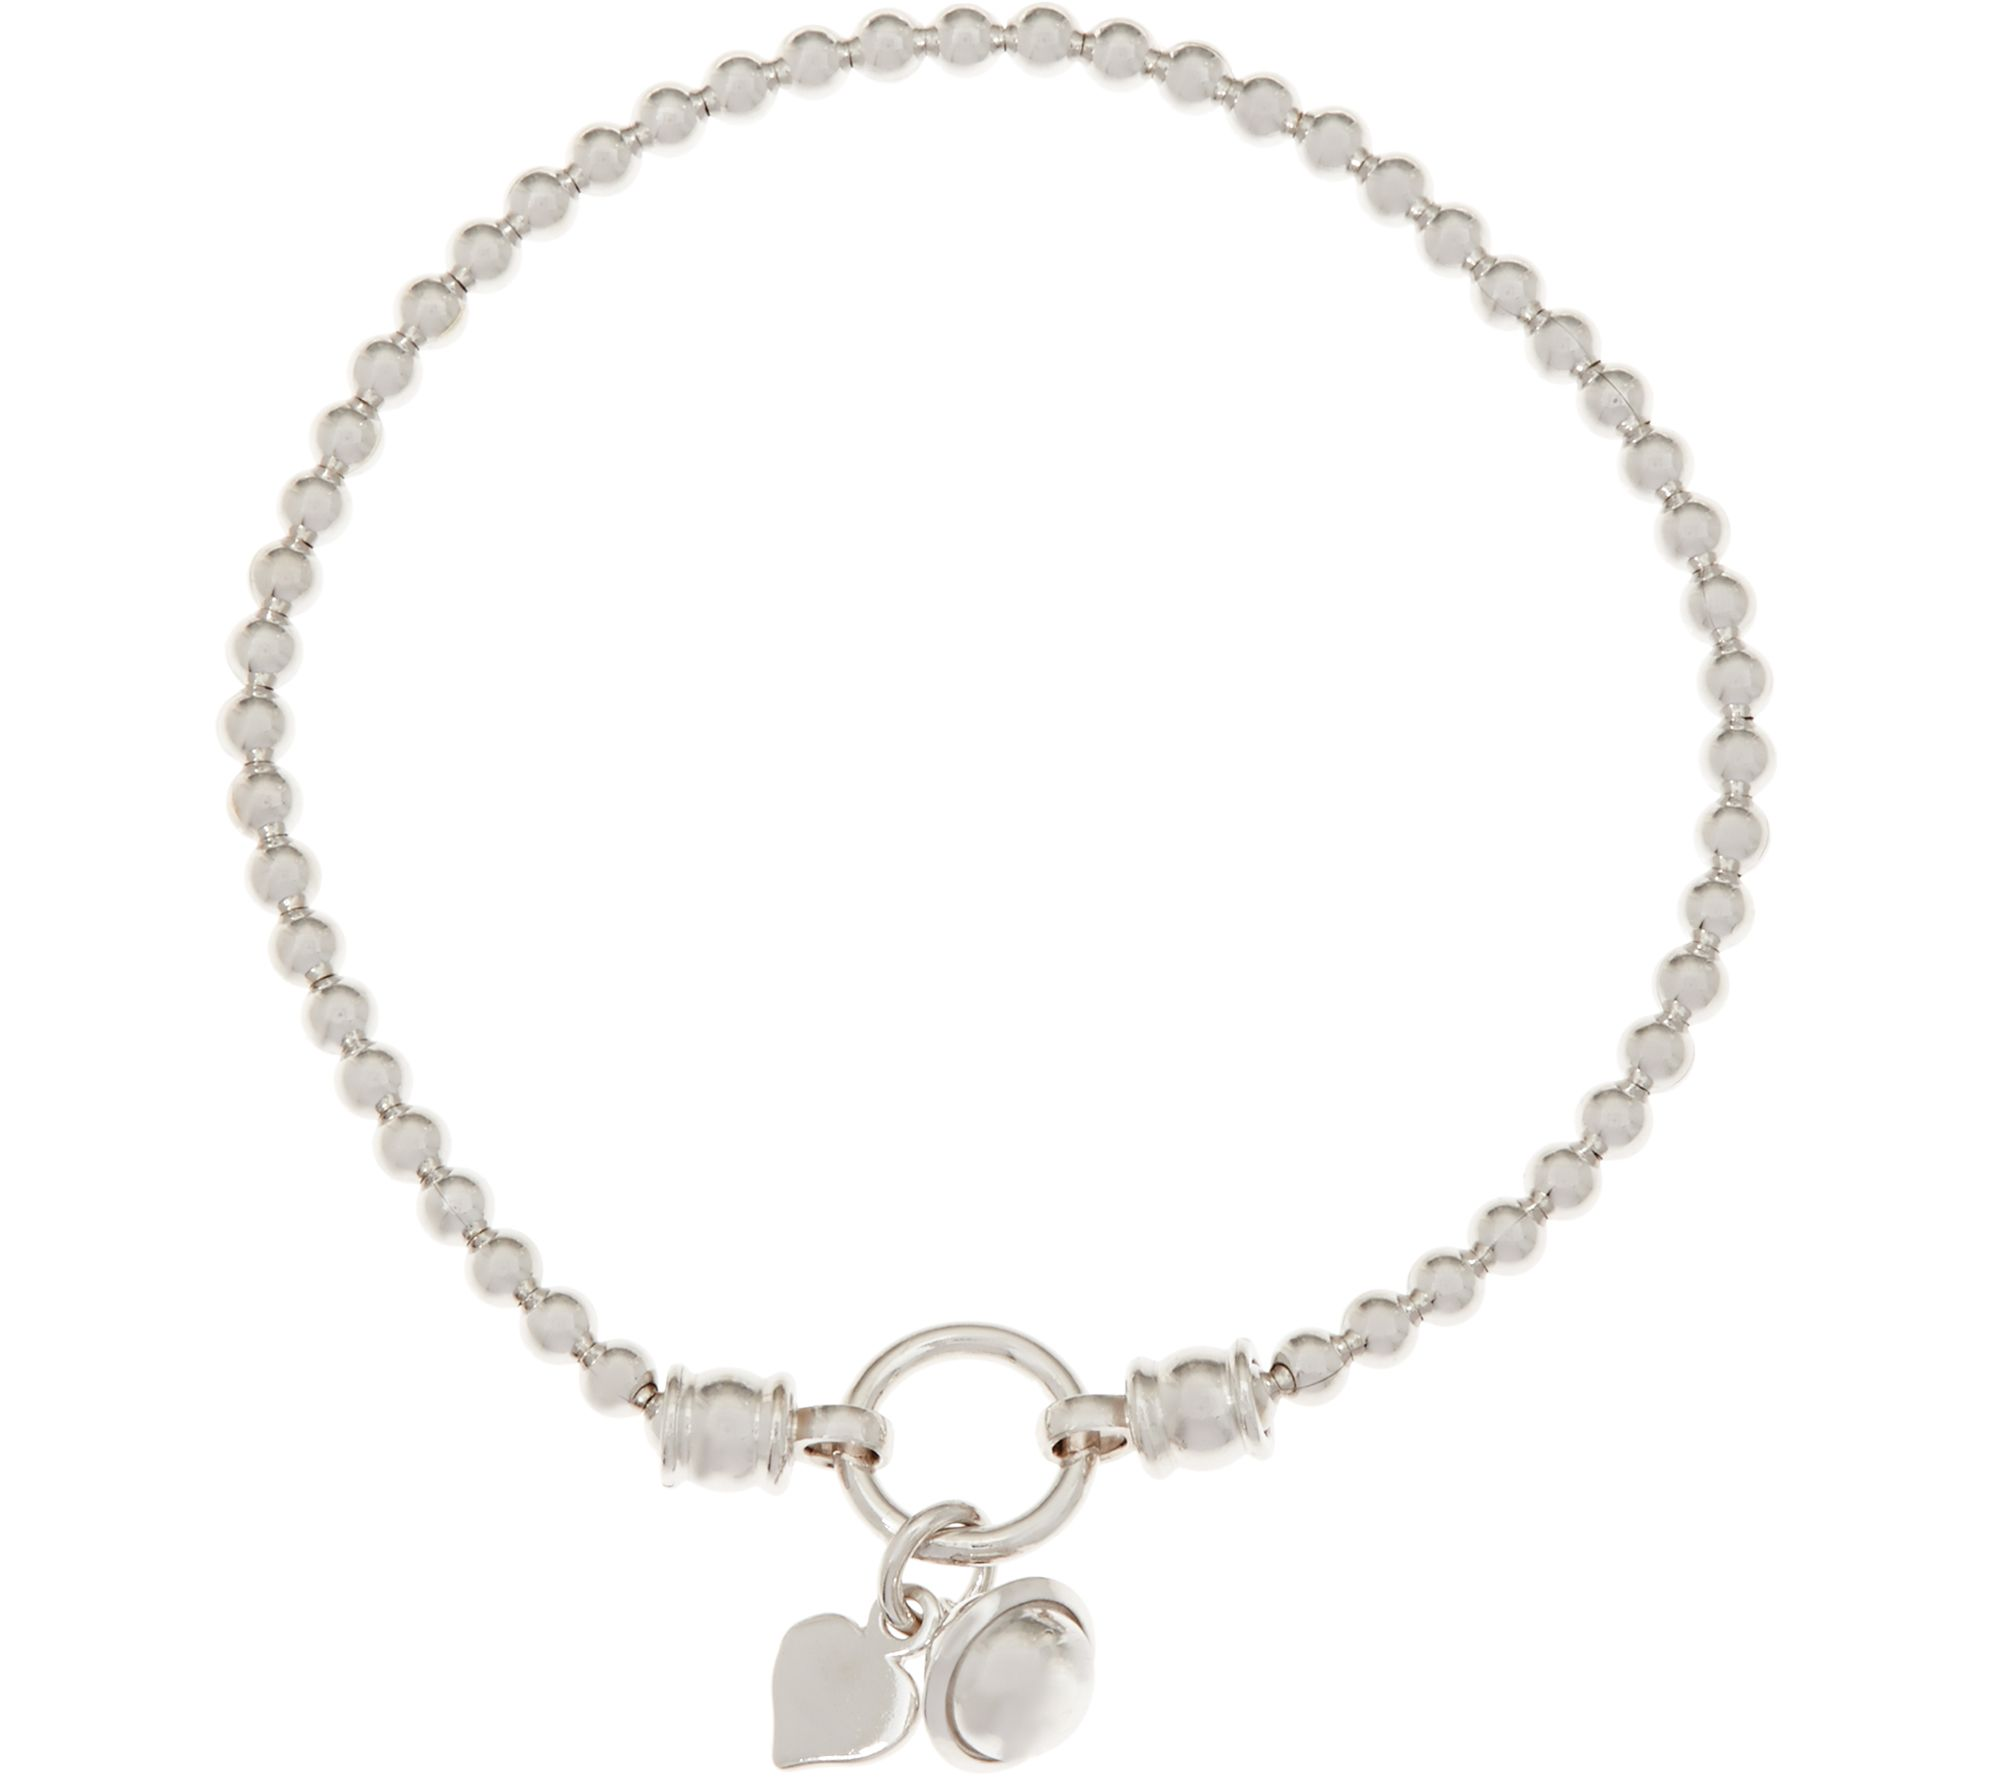 Italian Sterling Silver Charm Stretch Bracelet, 60g  Page 1 — Qvc